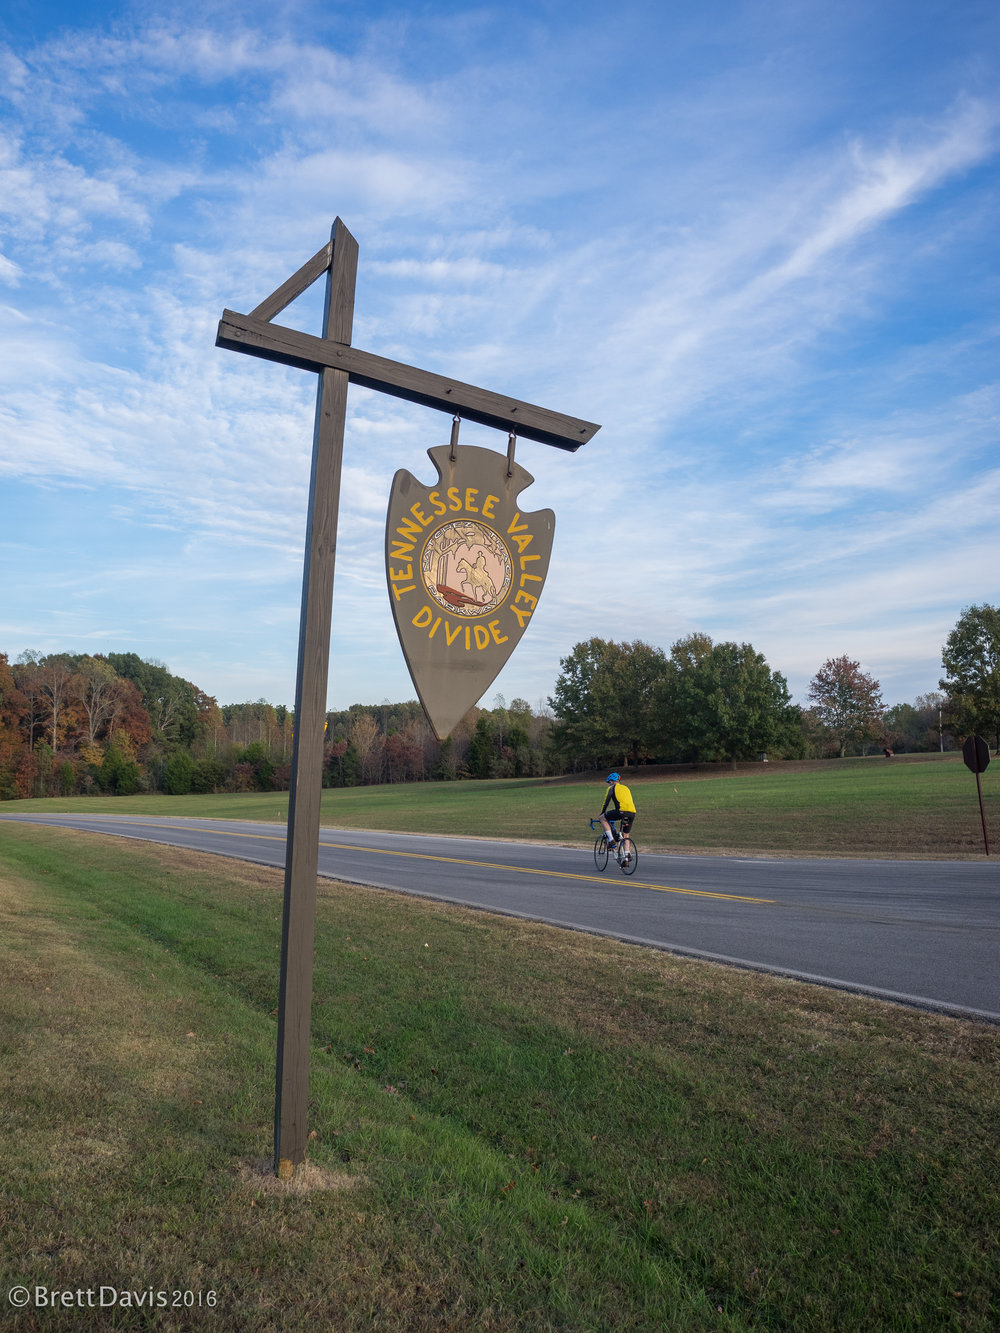 The Natchez Trace is one of our nation's longest national parkways.